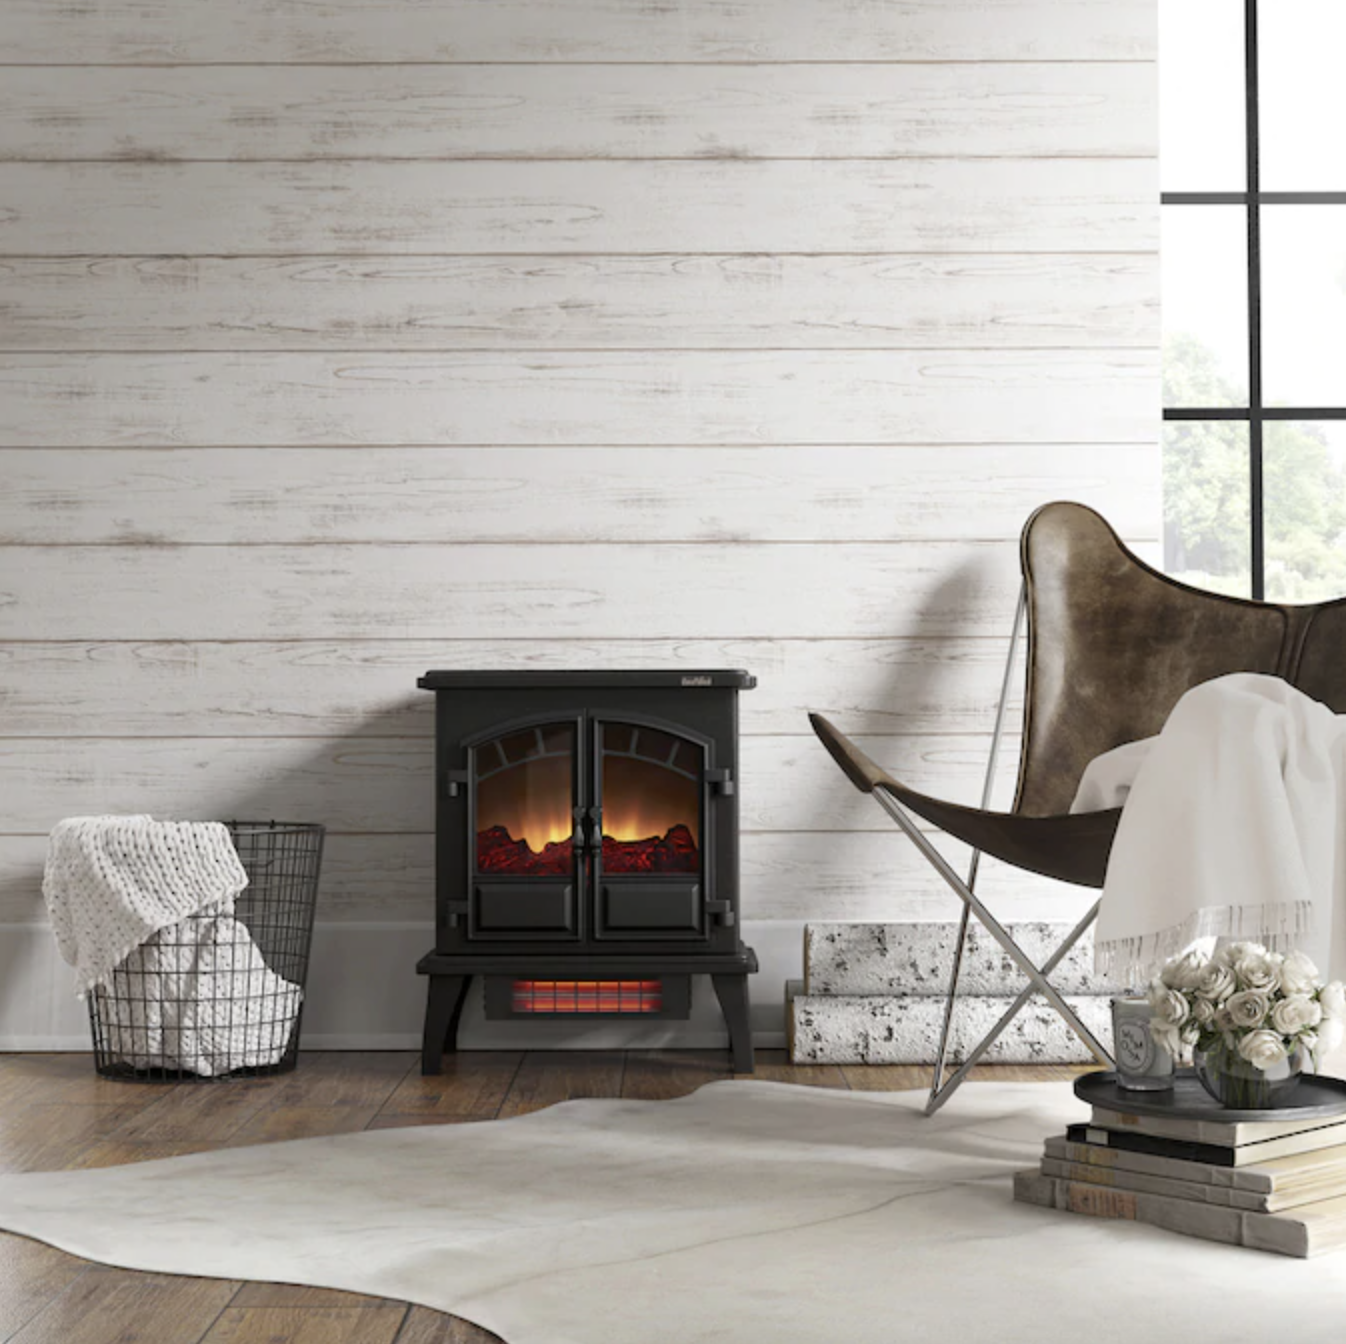 small electric fireplace in home